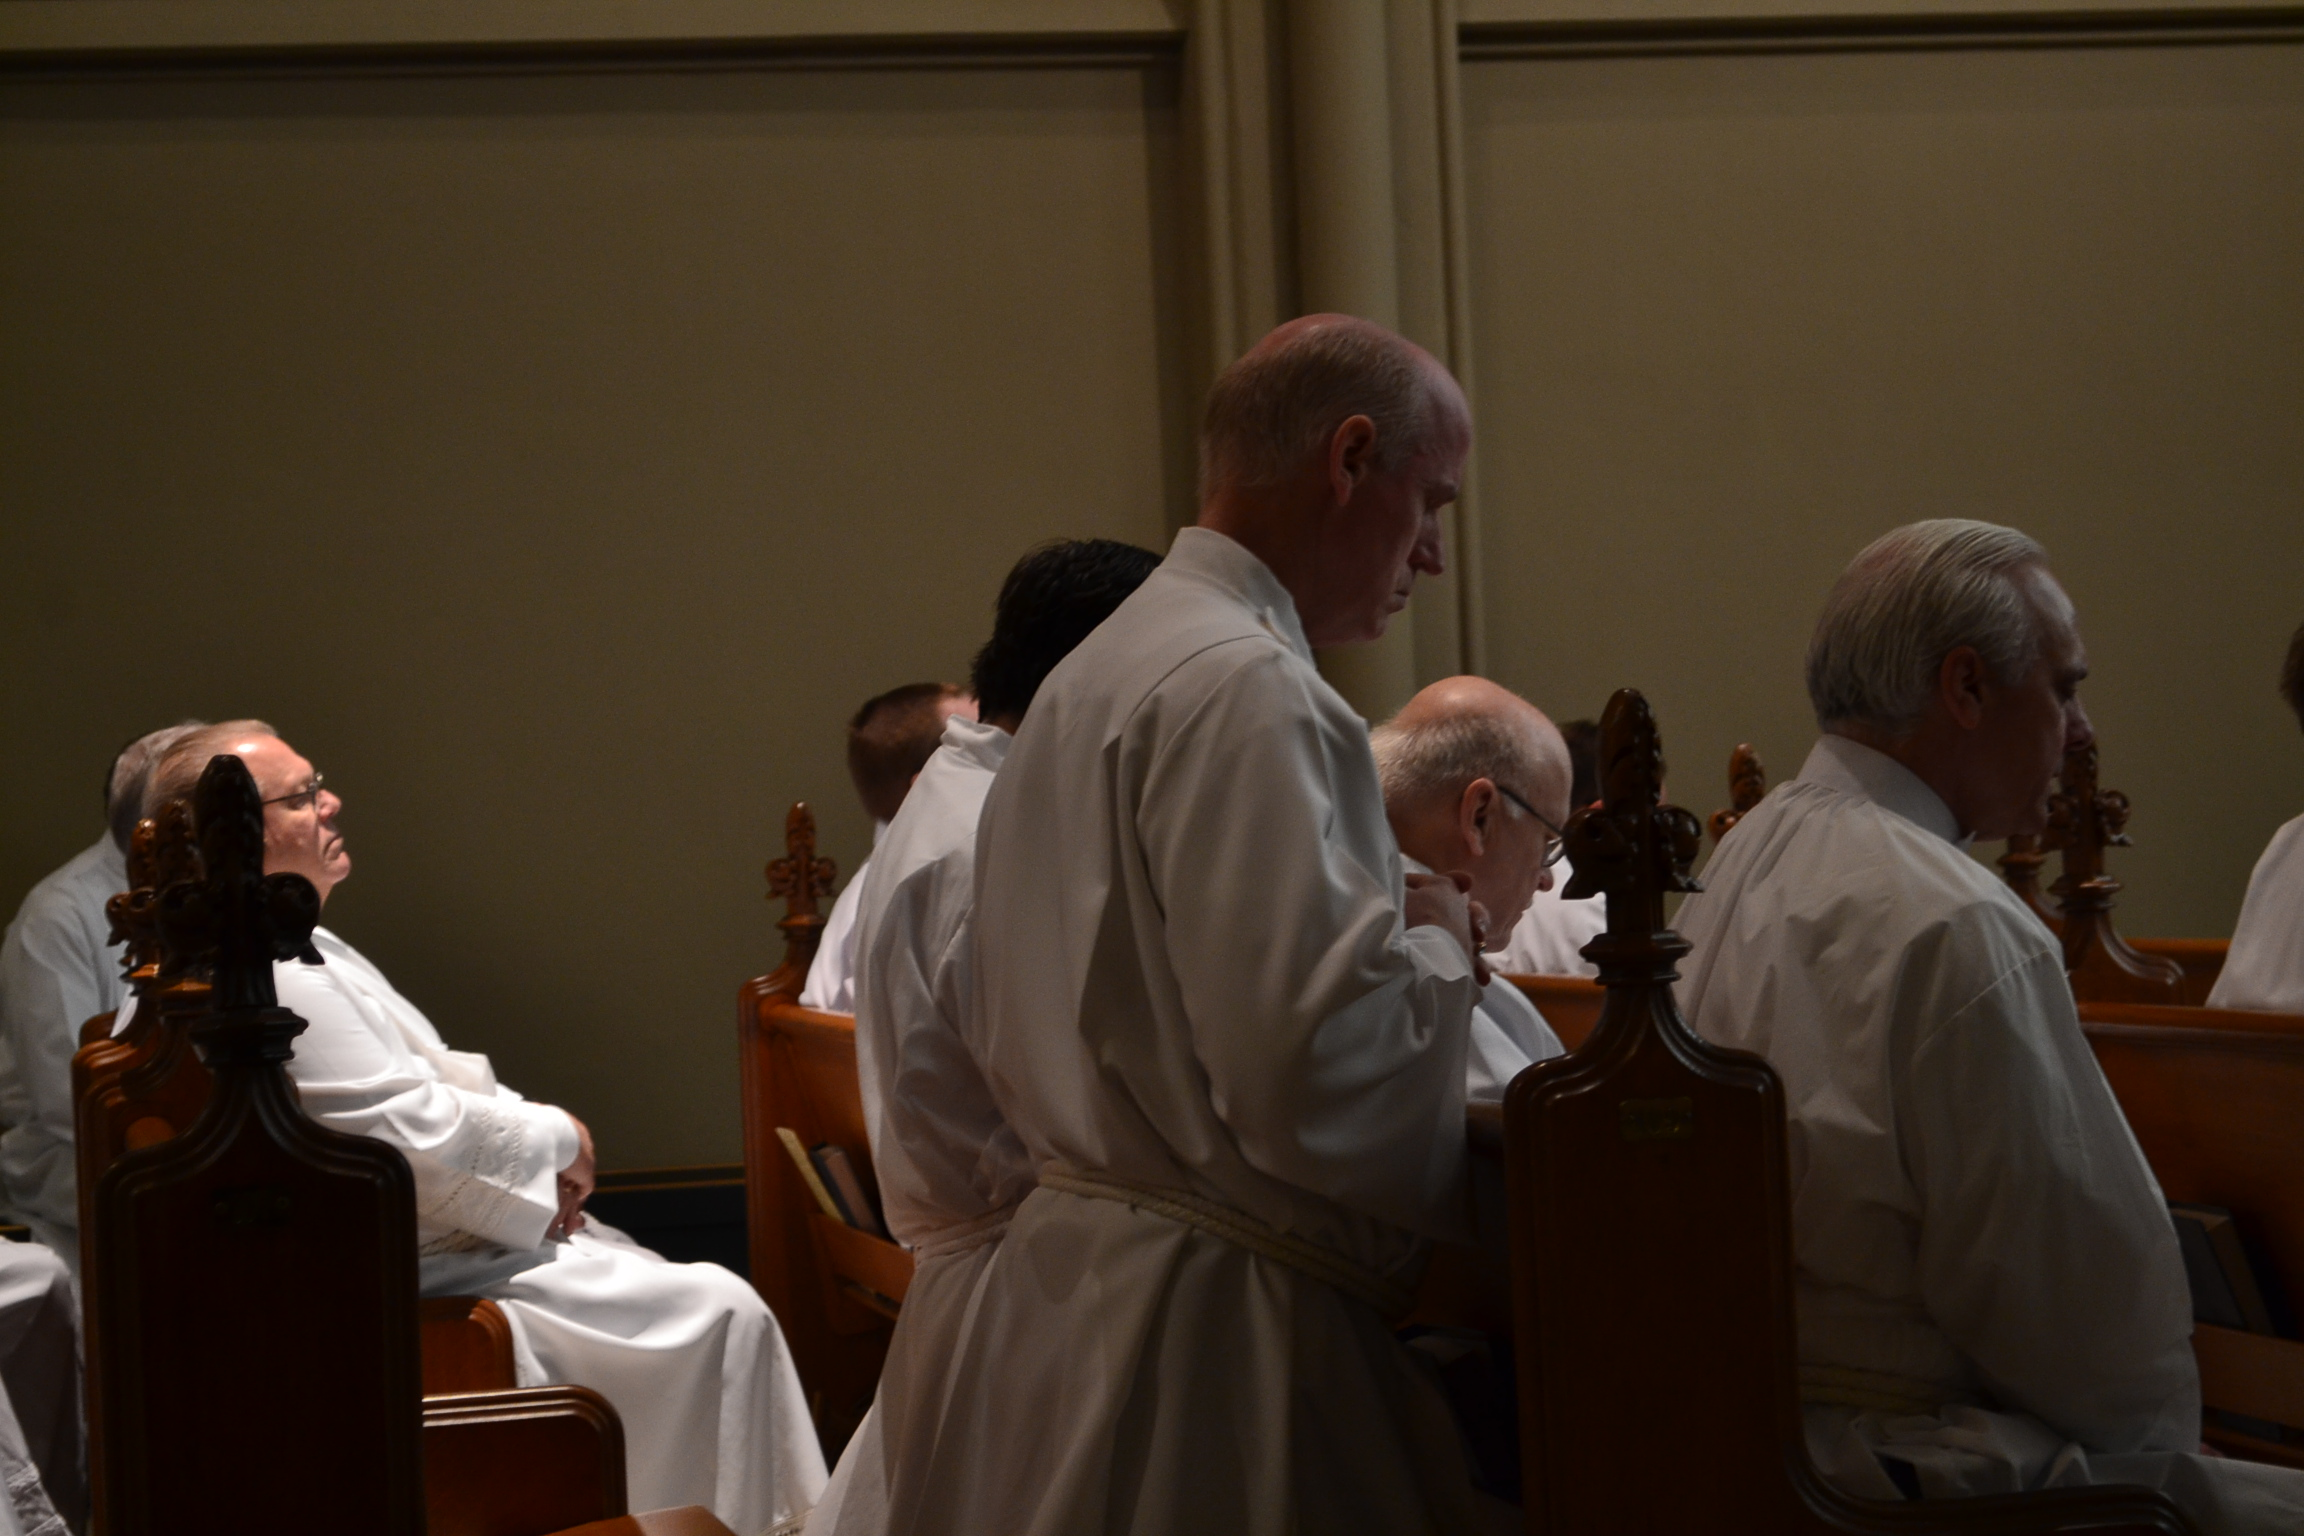 Praying before Mass in the Blessed Sacrament Chapel. (CT Photo./Greg Hartman)